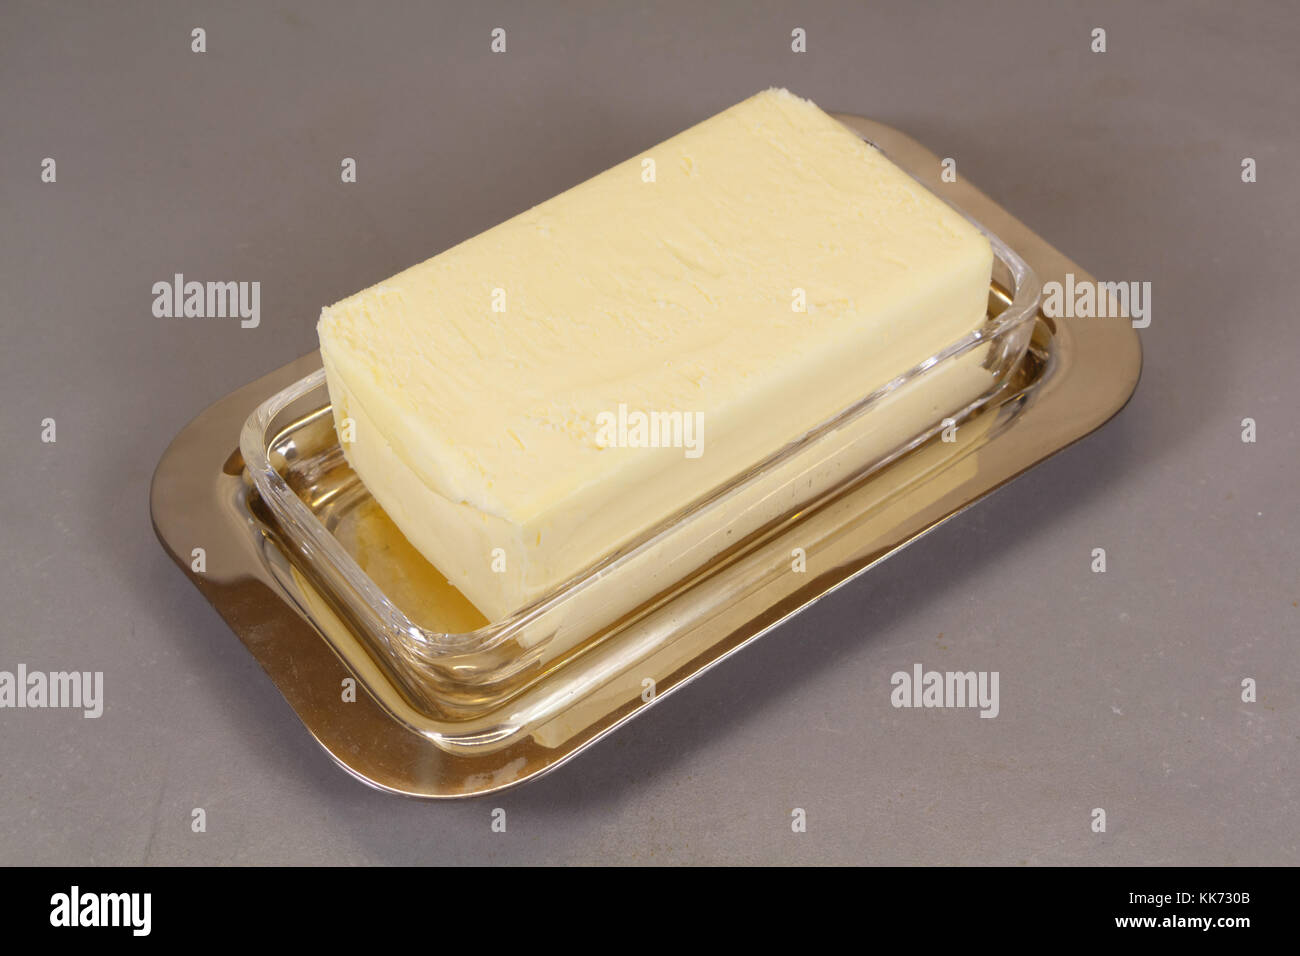 Pack of butter in a butter dish made of metal and glass Stock Photo